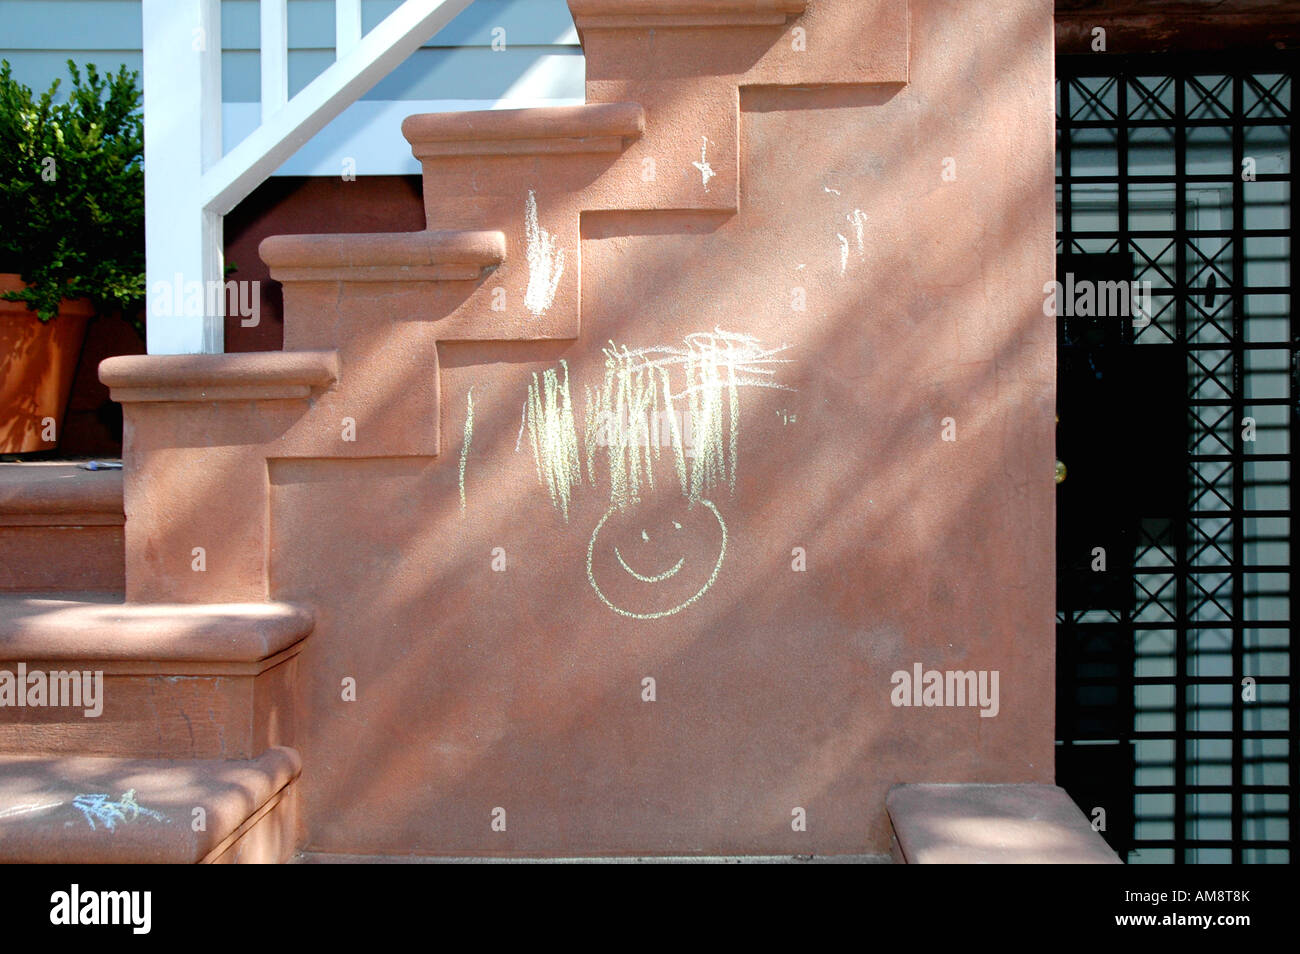 young childs chalk drawing of a smiley face on residential cement stairway - Stock Image